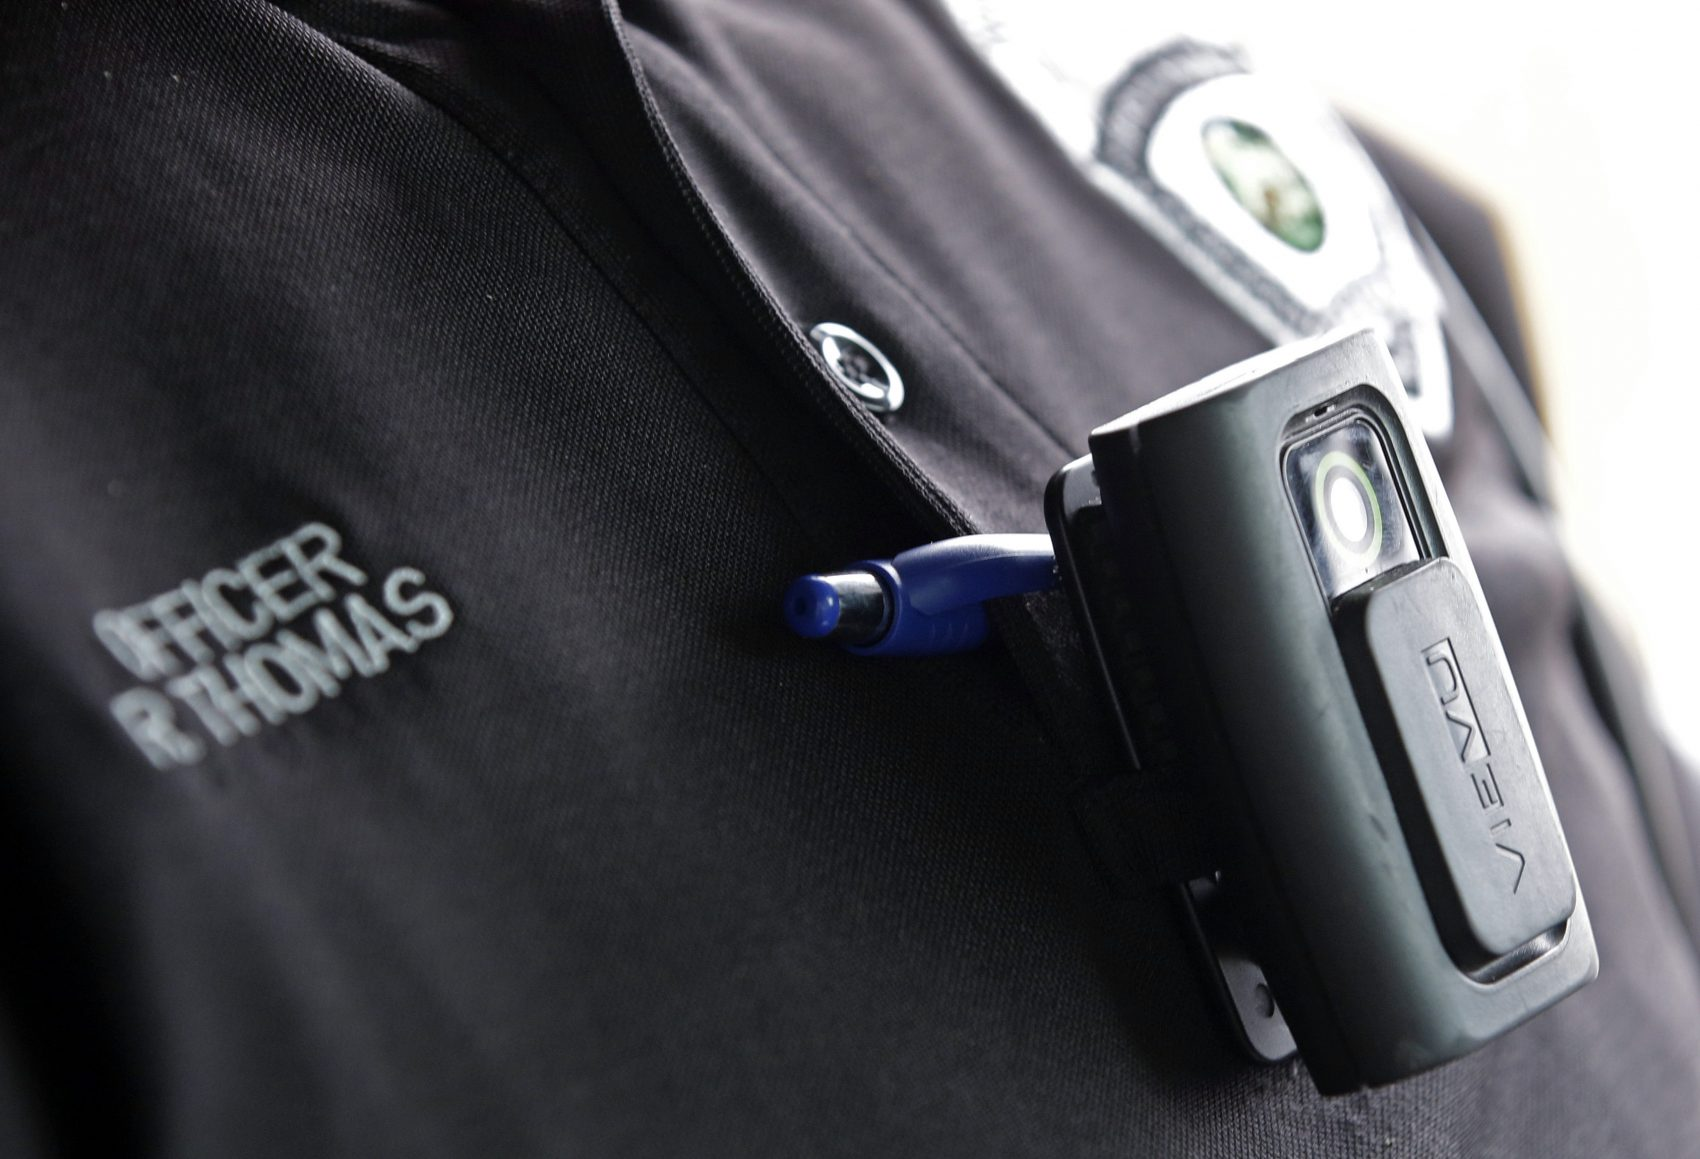 After recent police shootings, activists in Boston say they want police to move more quickly in implementing a body camera pilot program. Pictured: A body camera on an officer in Whitestown, Indiana. (Darron Cummings/AP)